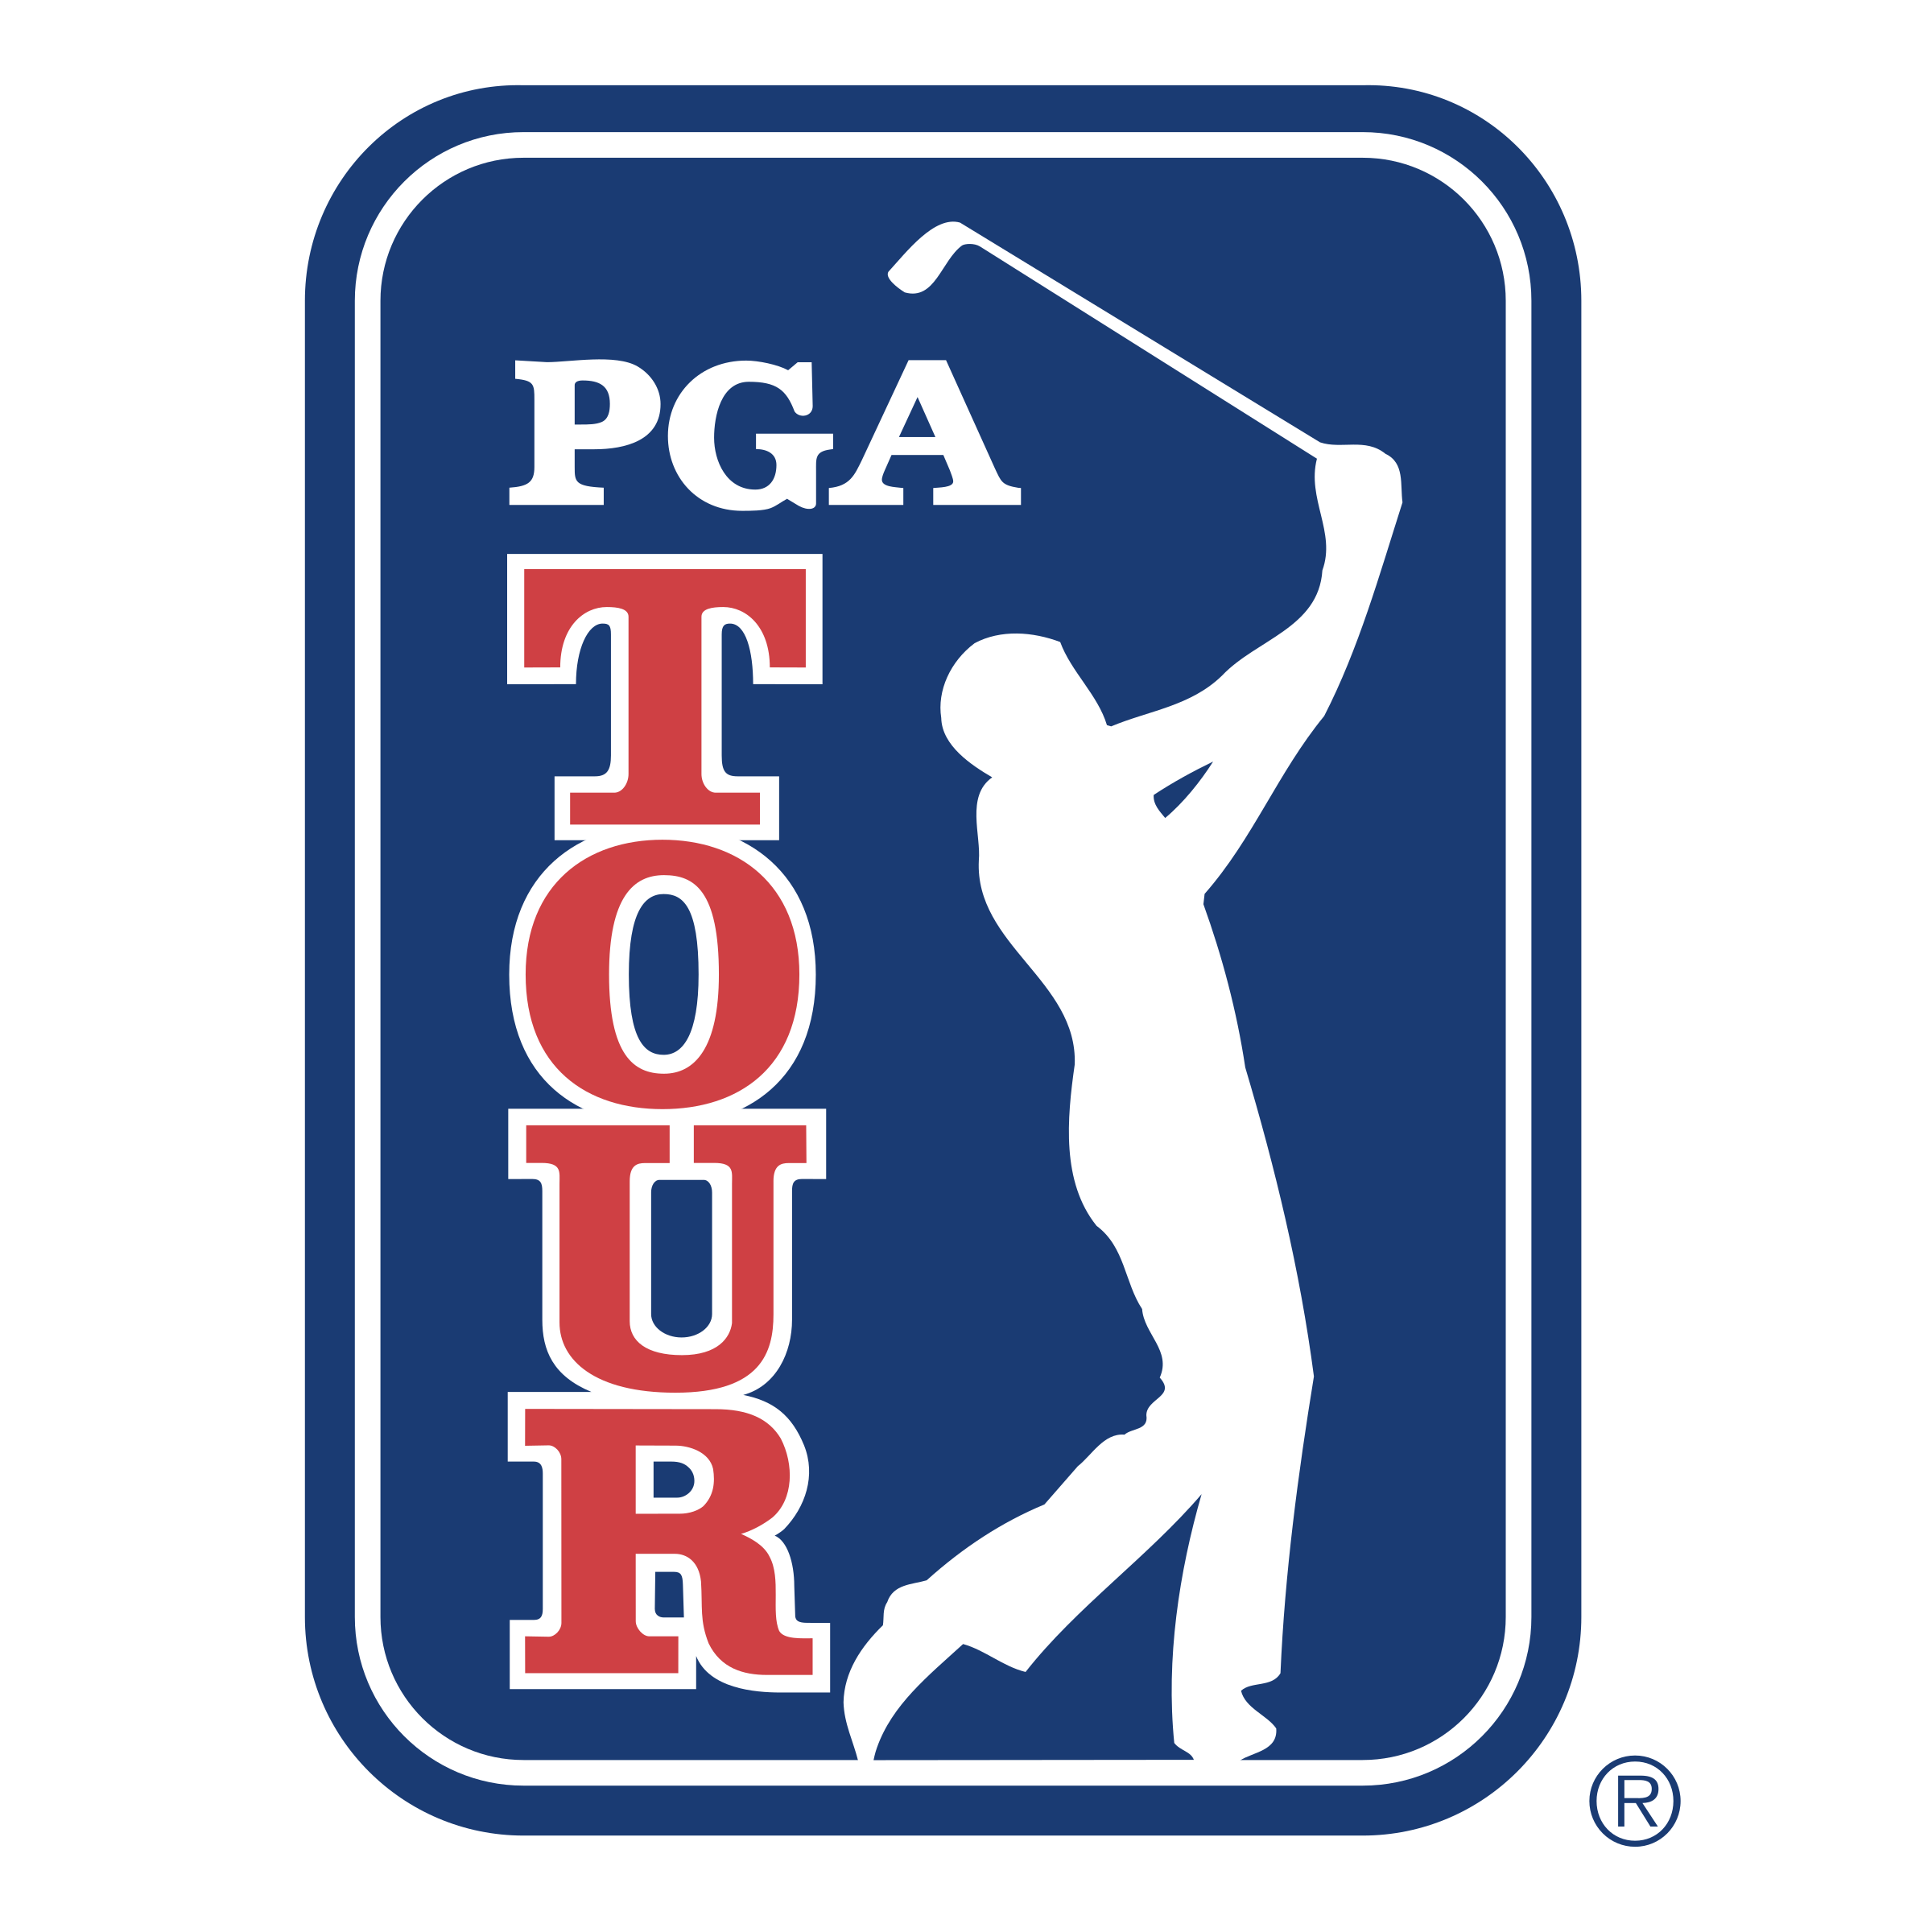 pga-tour-6-logo-png-transparent.png